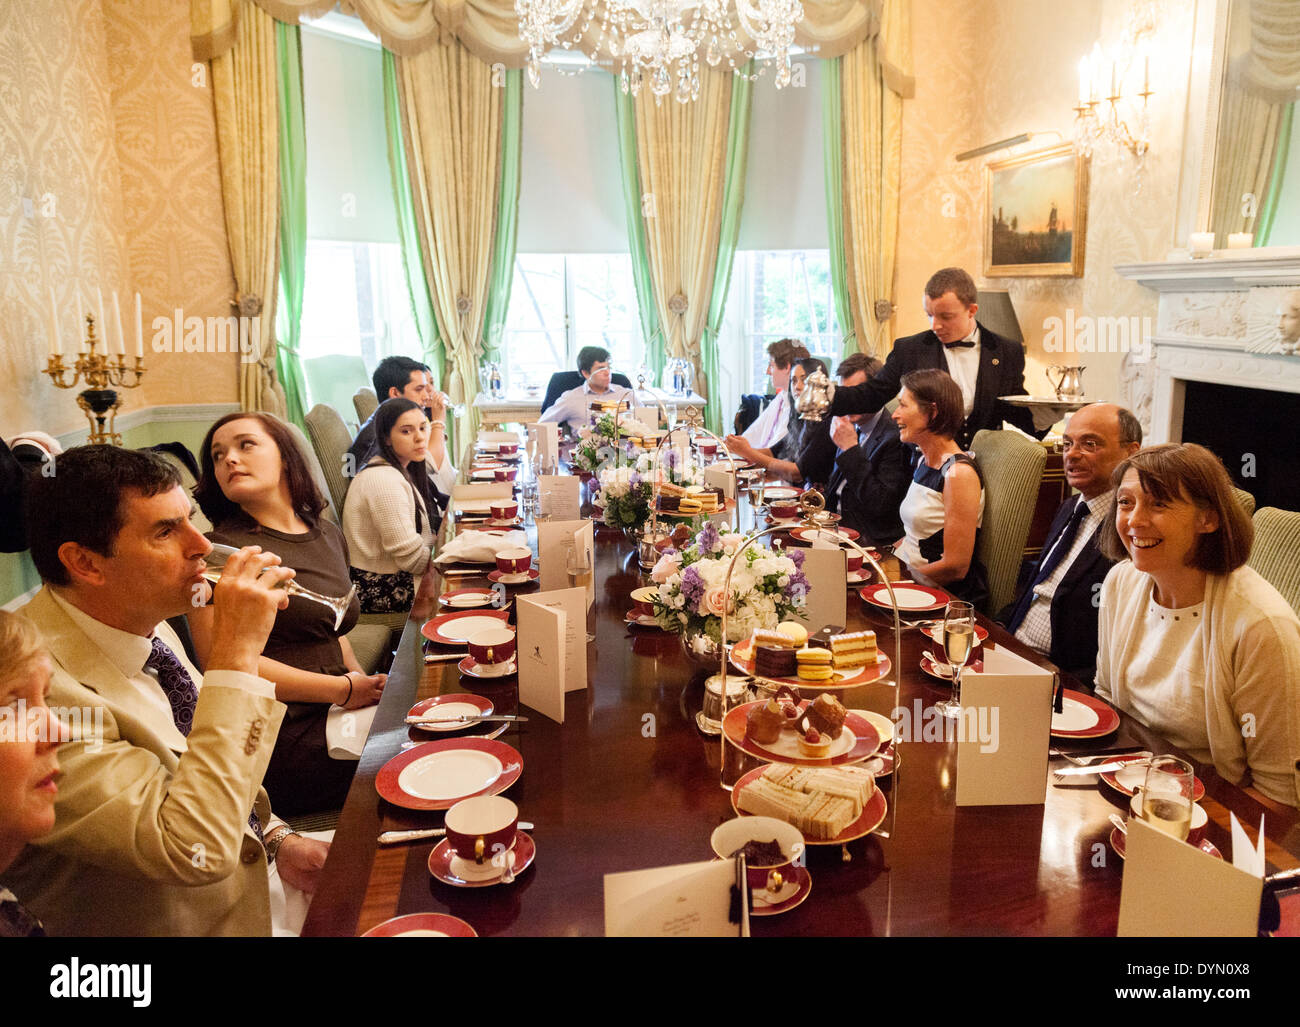 Guests having afternoon tea in a private room at the 5 star Ritz Hotel, Piccadilly, London England UK - Stock Image